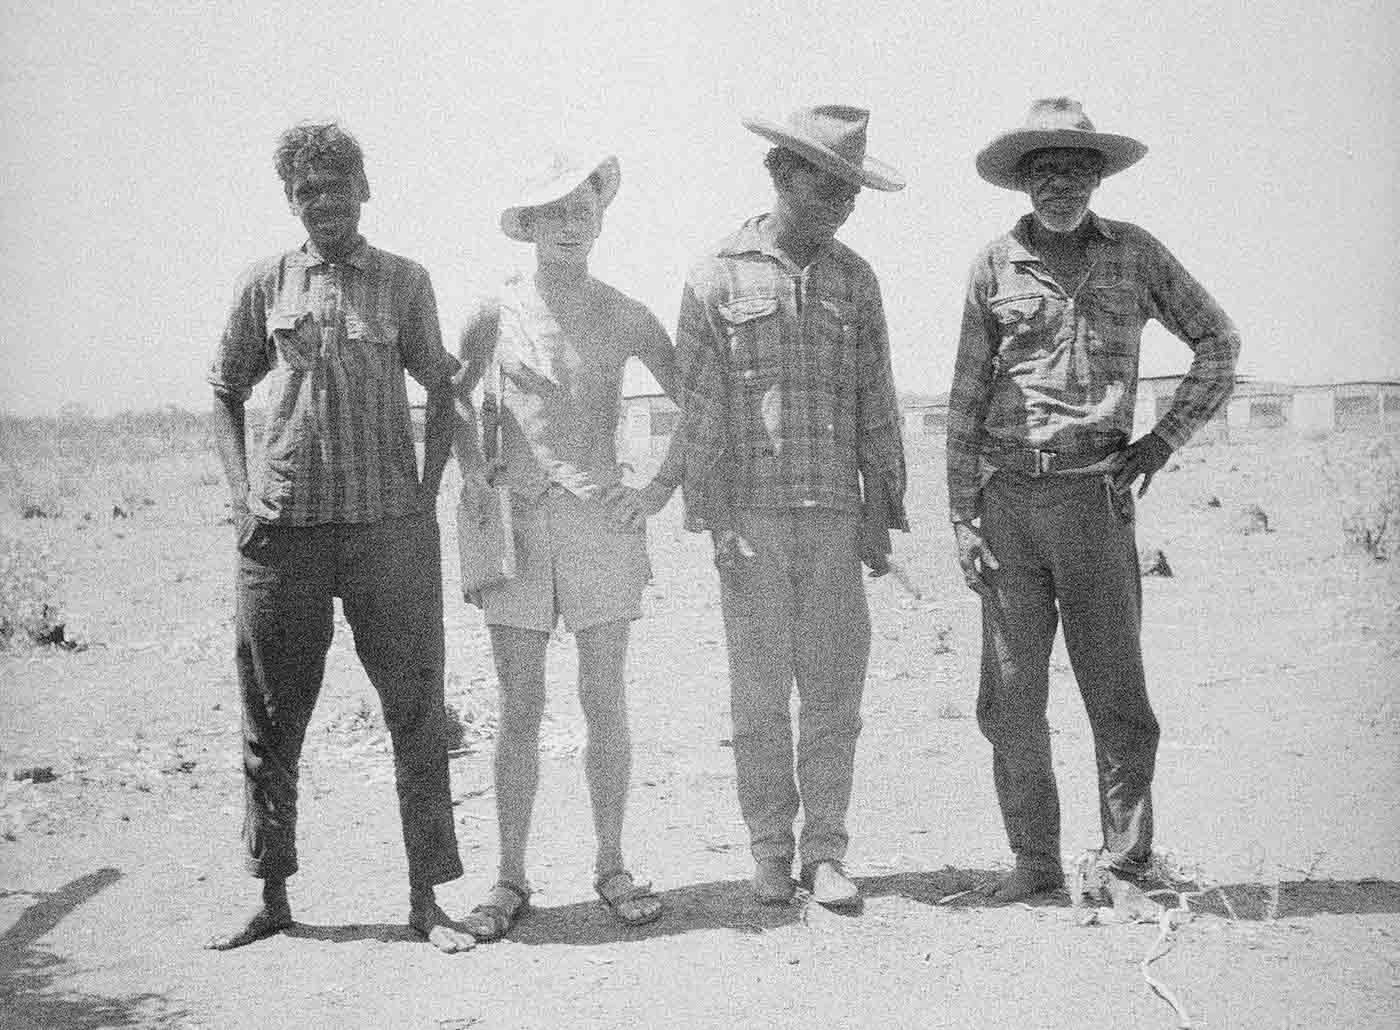 A black and white photo of Freddy Jangala Patrick (left), Mervyn Meggitt and two unidentified men